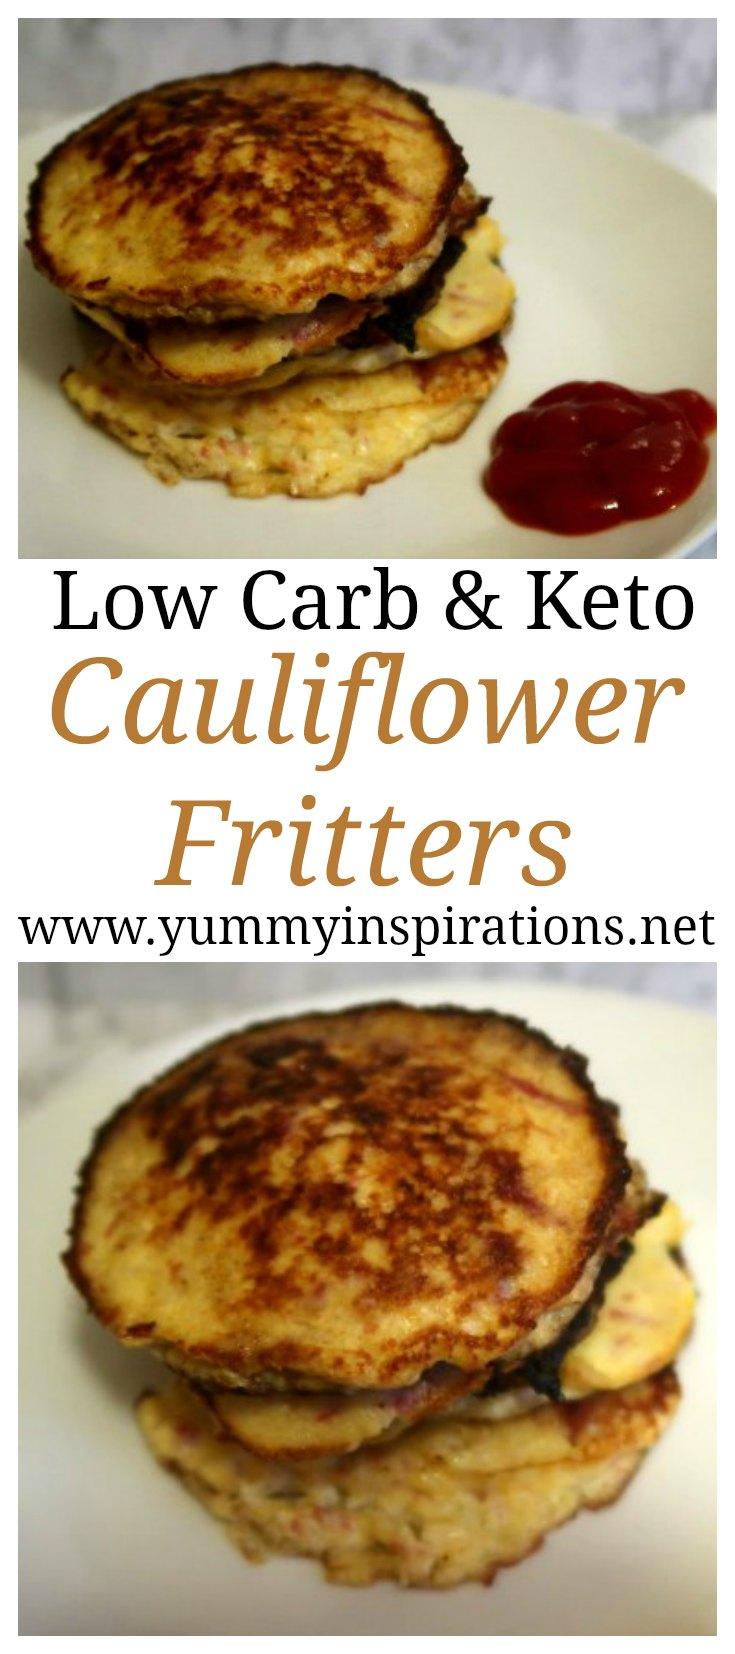 Keto Cauliflower Fritters with Irish Corned Beef - Easy Low Carb Recipes